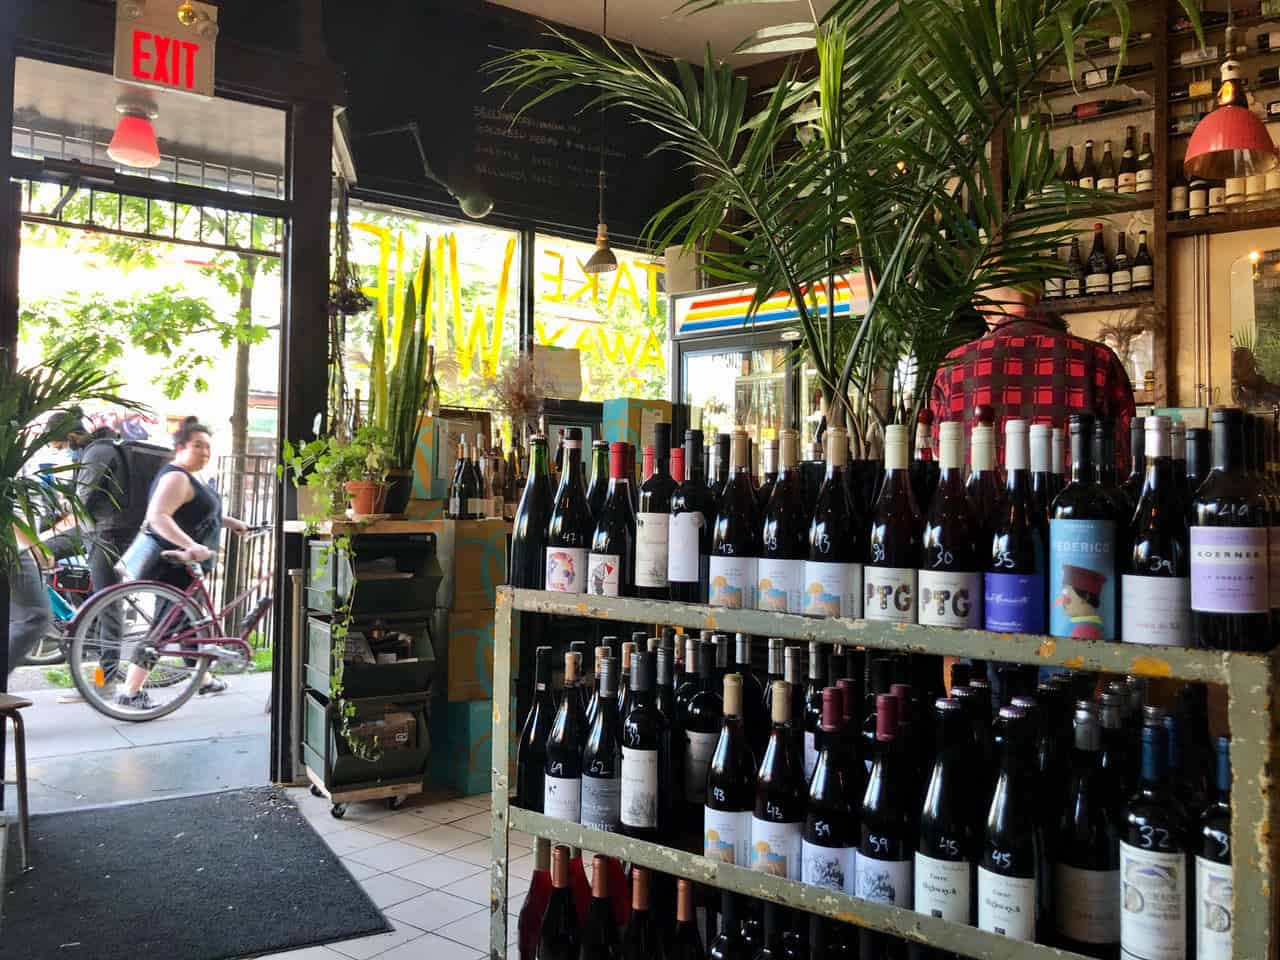 Midfield Wine Bar image for private wine sales story